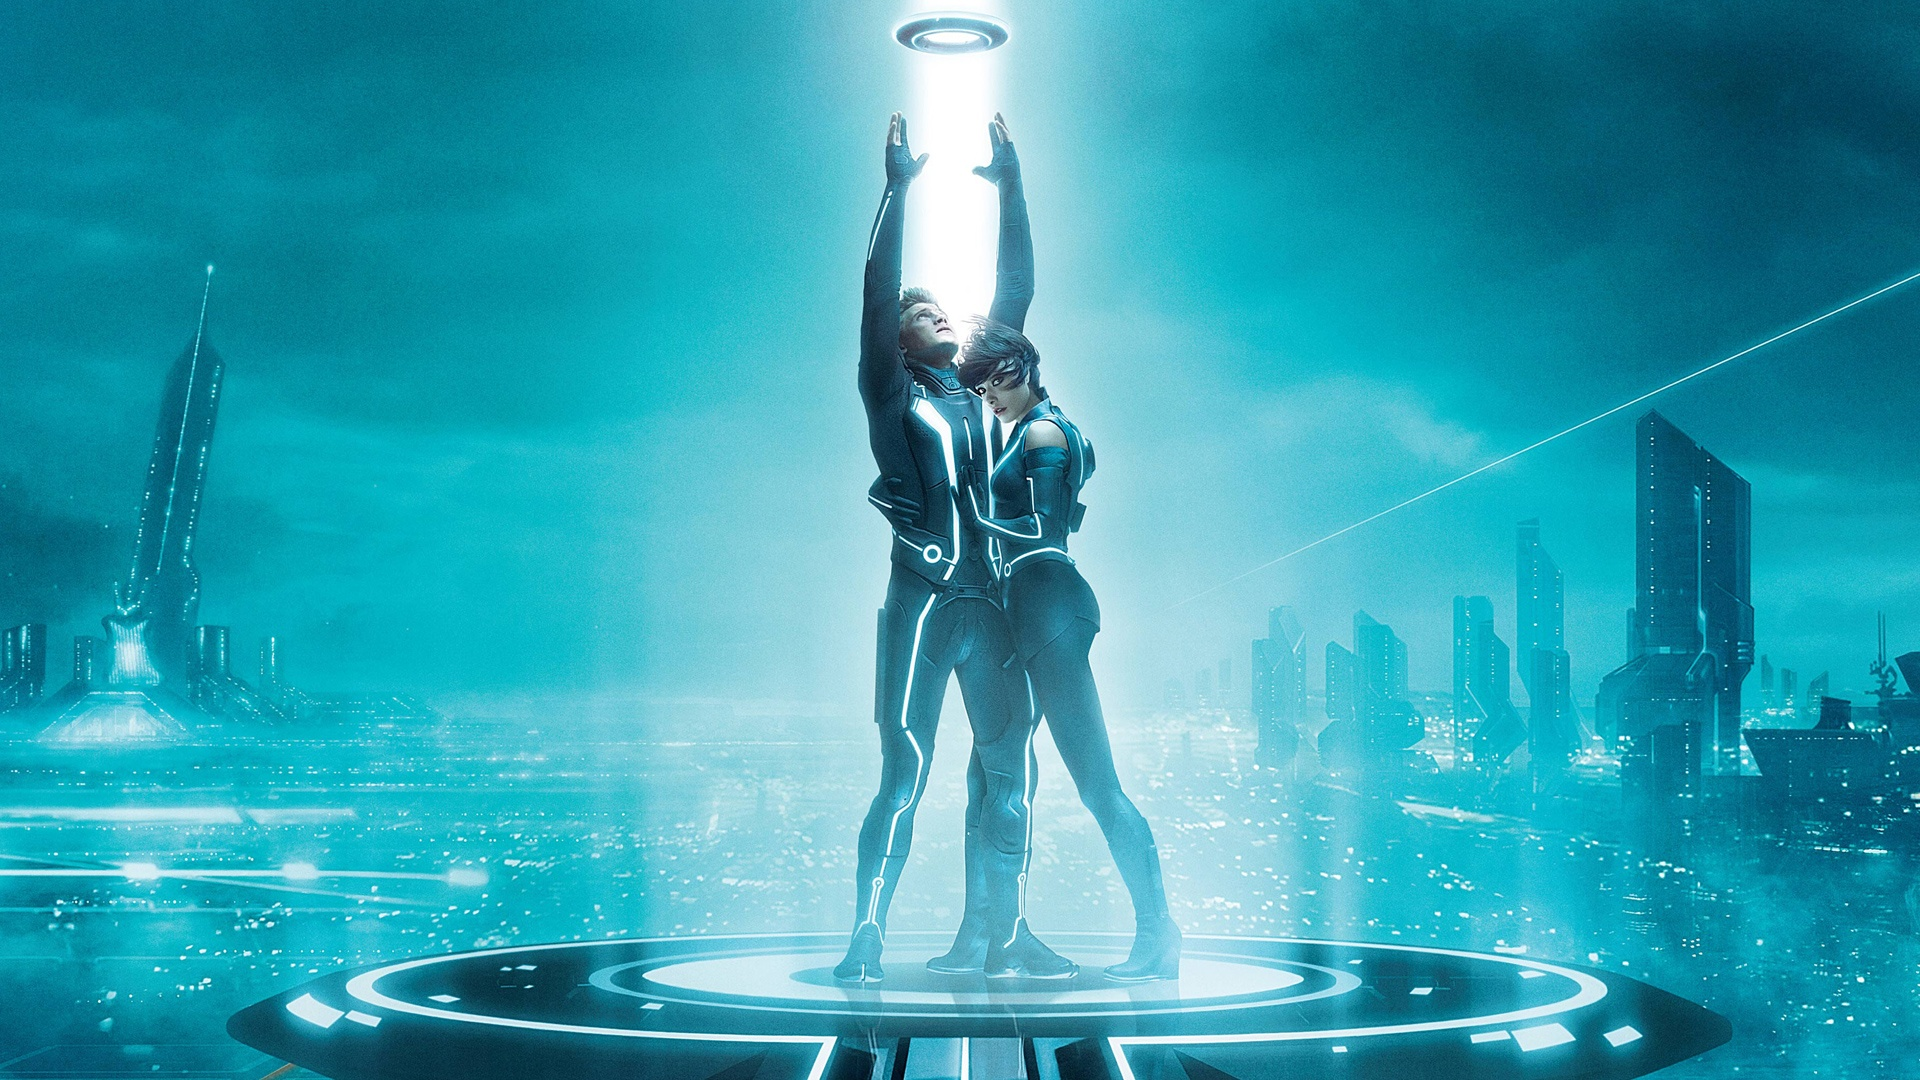 sam flynn quorra tron legacy wallpapers in jpg format for free download